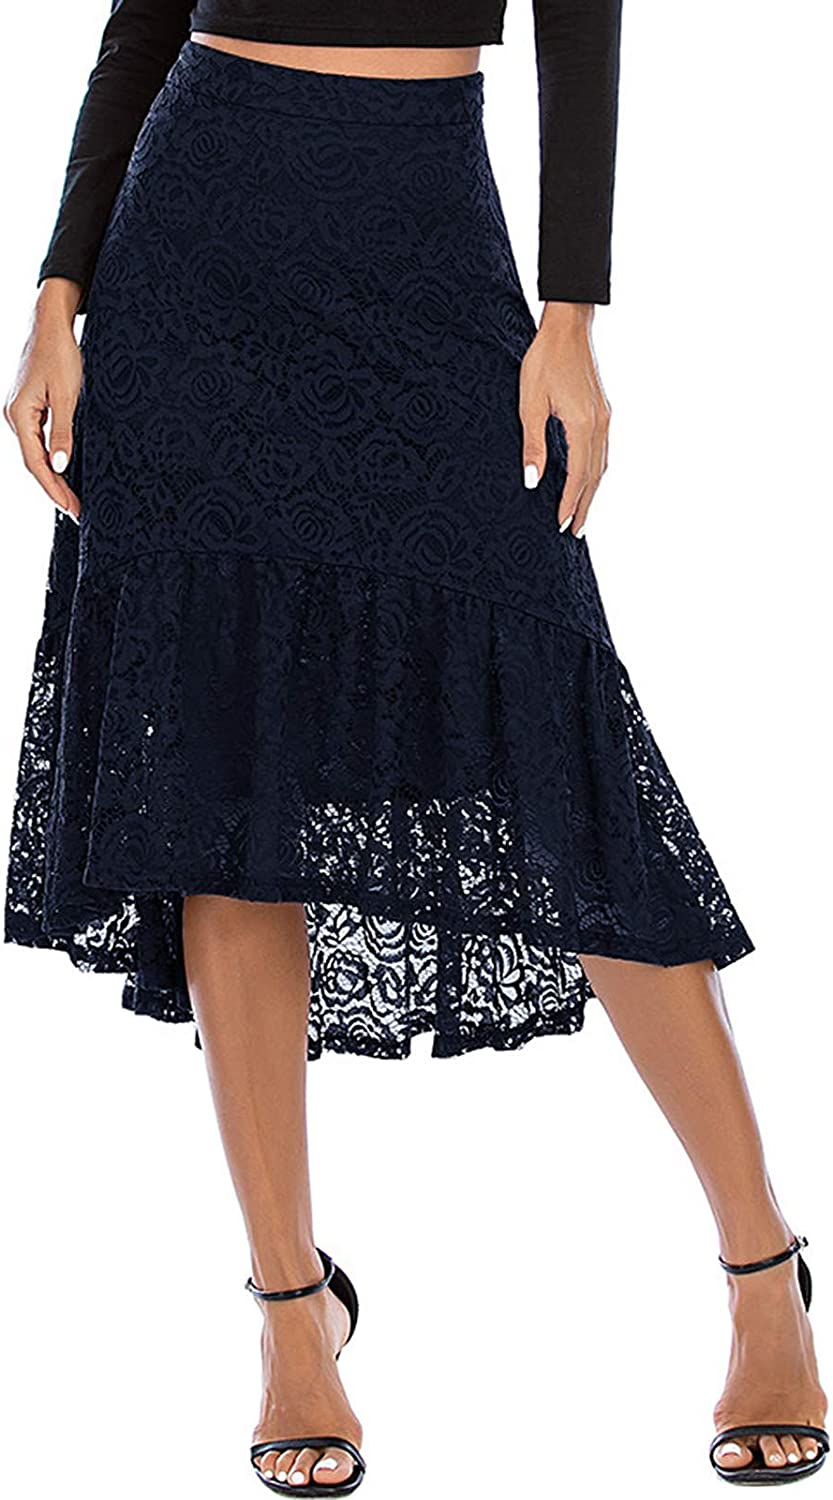 Bridesmay Women's Lace Skirt High Waist Midi High Low Basic Skirts for Work, Date, Party